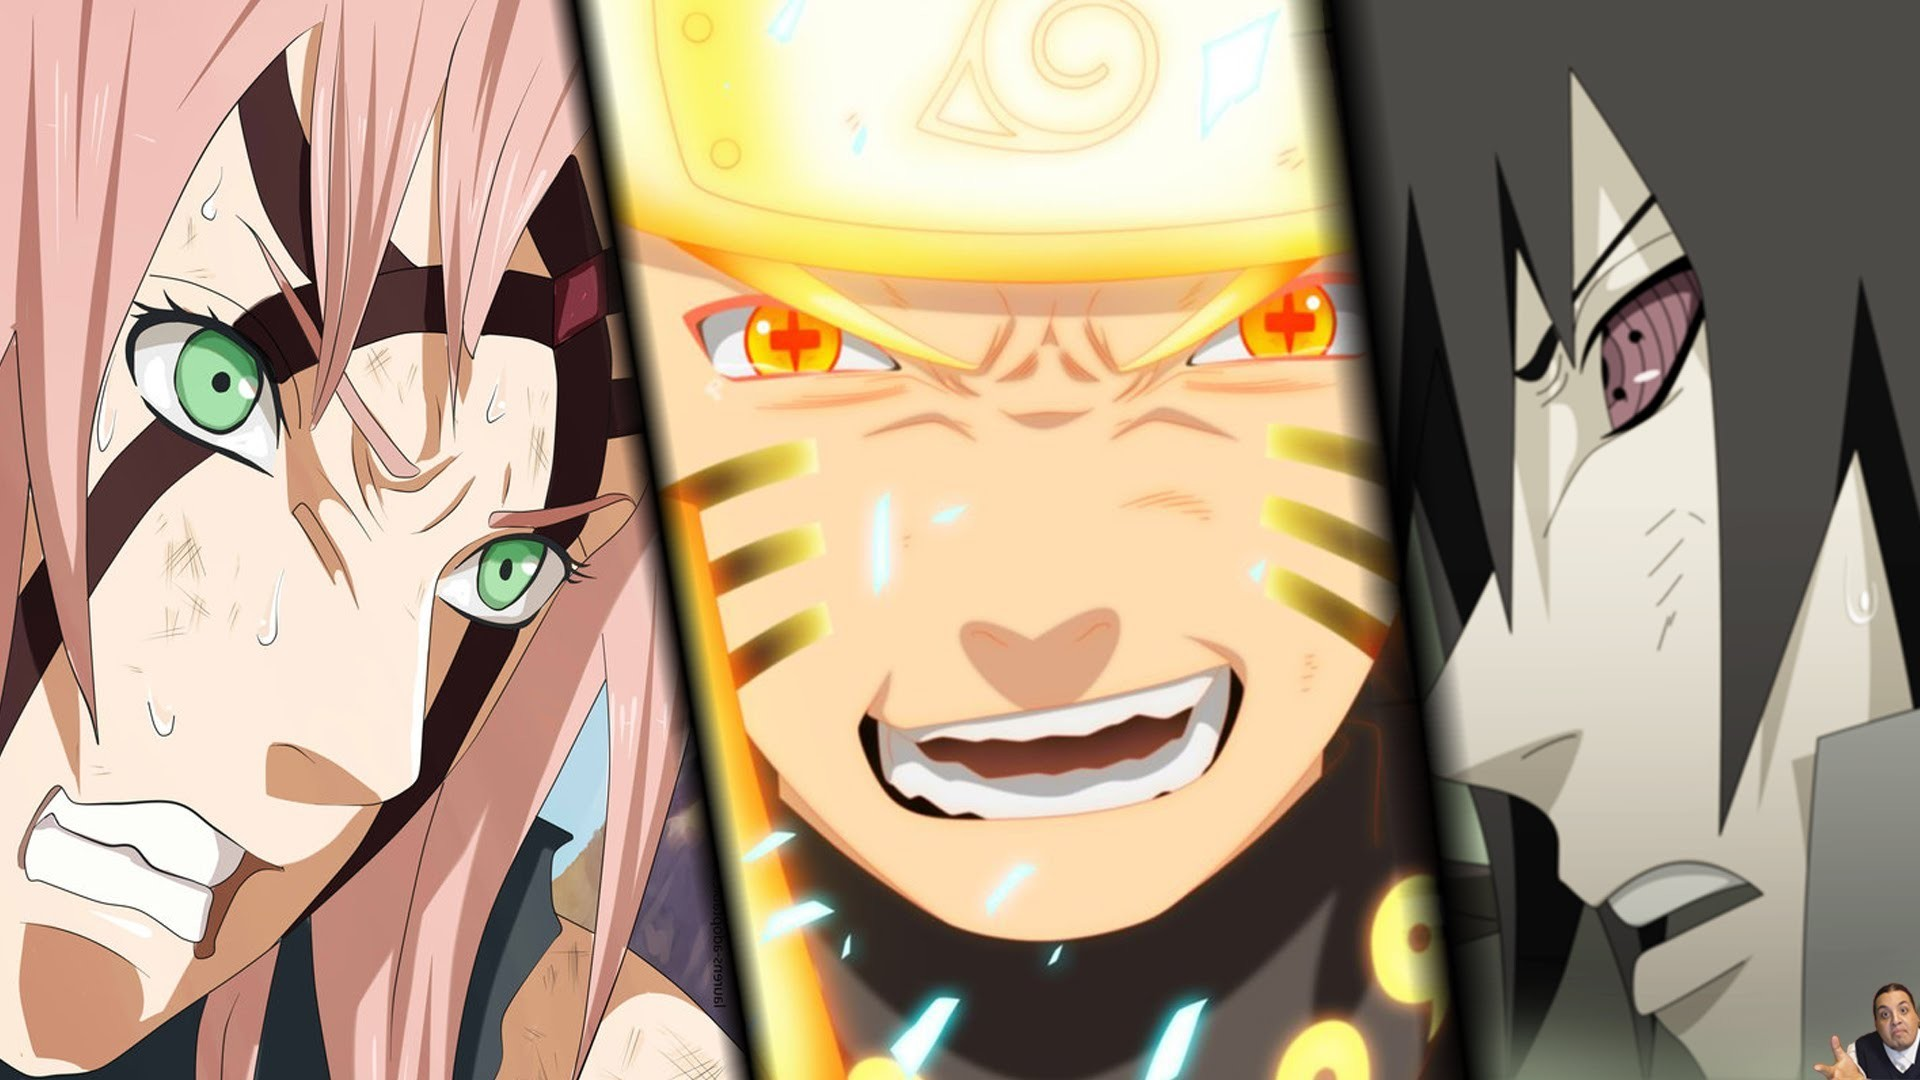 Simple Wallpaper Naruto Team 7 - 324726  You Should Have.jpg